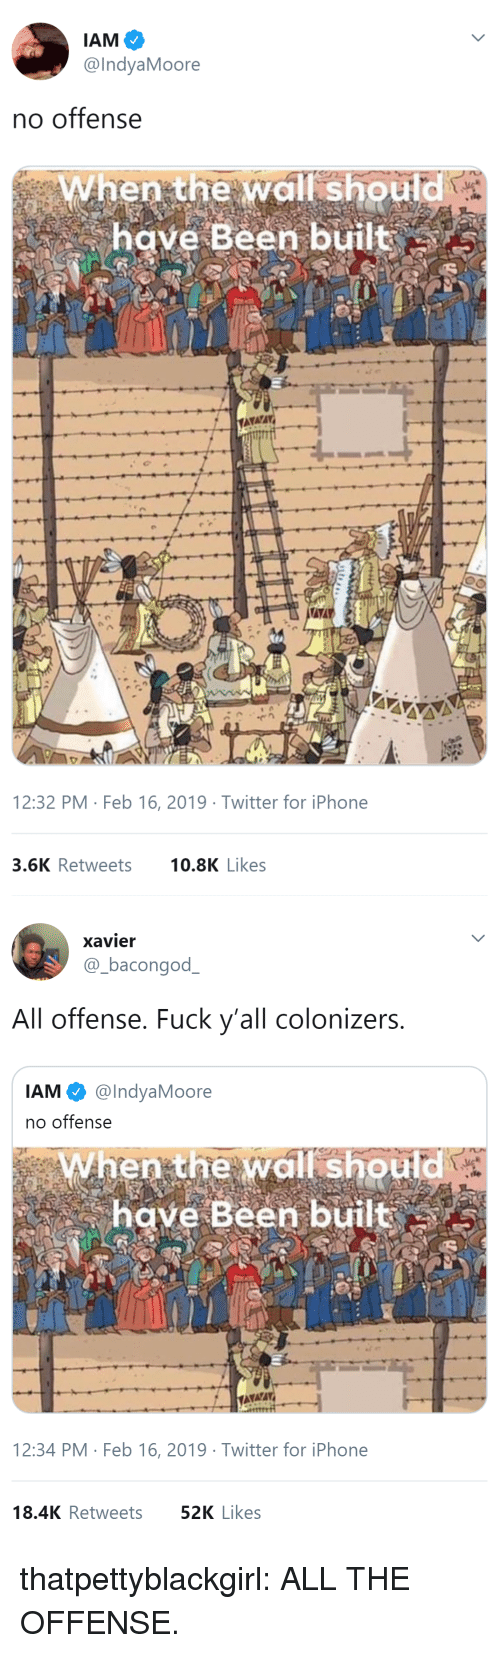 xavier: @IndyaMoore  no offense  When the wall should  have Been built  12:32 PM Feb 16, 2019 Twitter for iPhone  3.6K Retweets 0.8K Likes   xavier  @-bacongodー  All offense. Fuck y'all colonizers  IAM @IndyaMoore  no offense  When the wall should  have Been built  12:34 PM Feb 16, 2019 Twitter for iPhone  18.4K Retweets  52K Likes thatpettyblackgirl:   ALL THE OFFENSE.